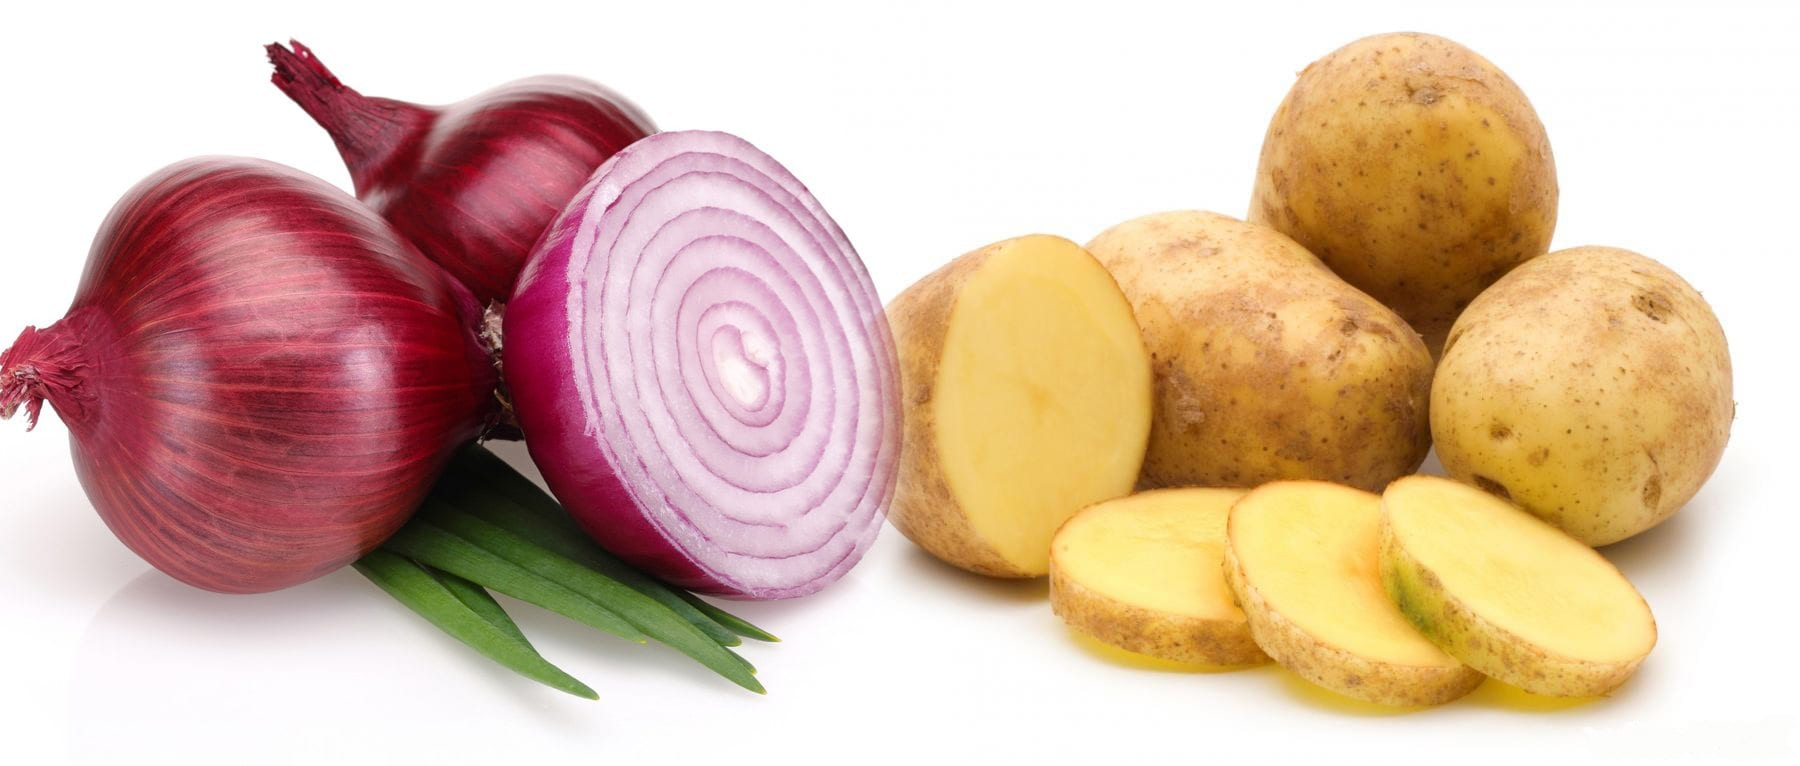 whole-and-sliced-raw-potatoes